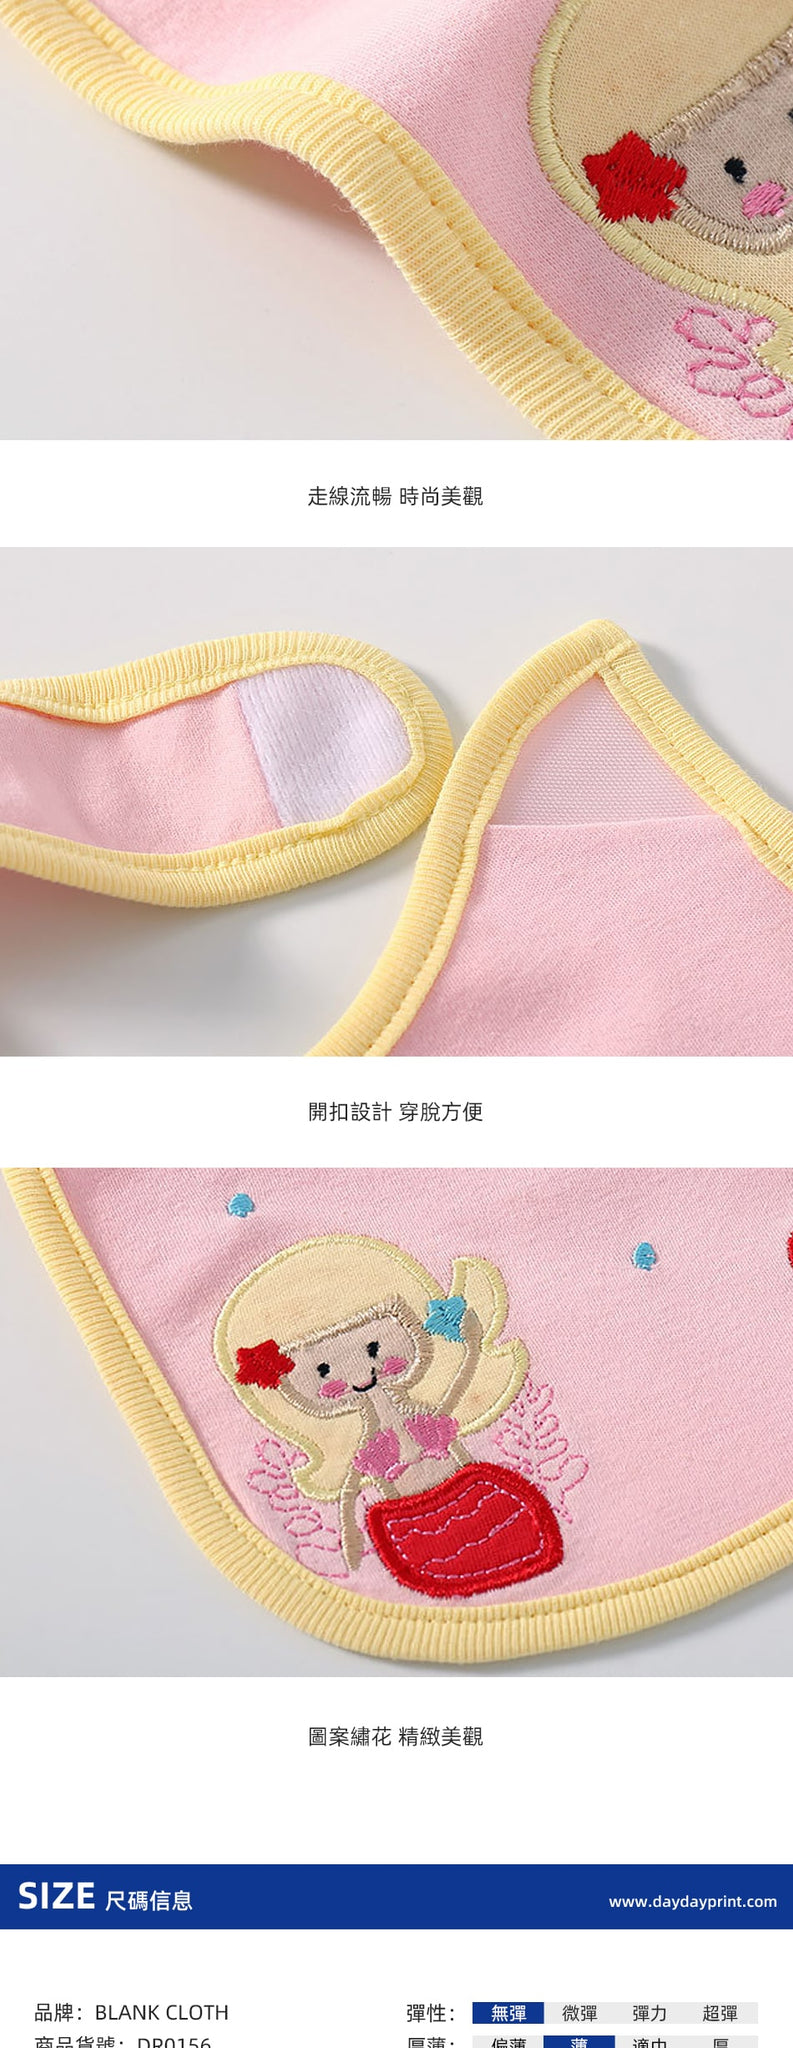 day day print bibs printing hong kong blank cloth 6